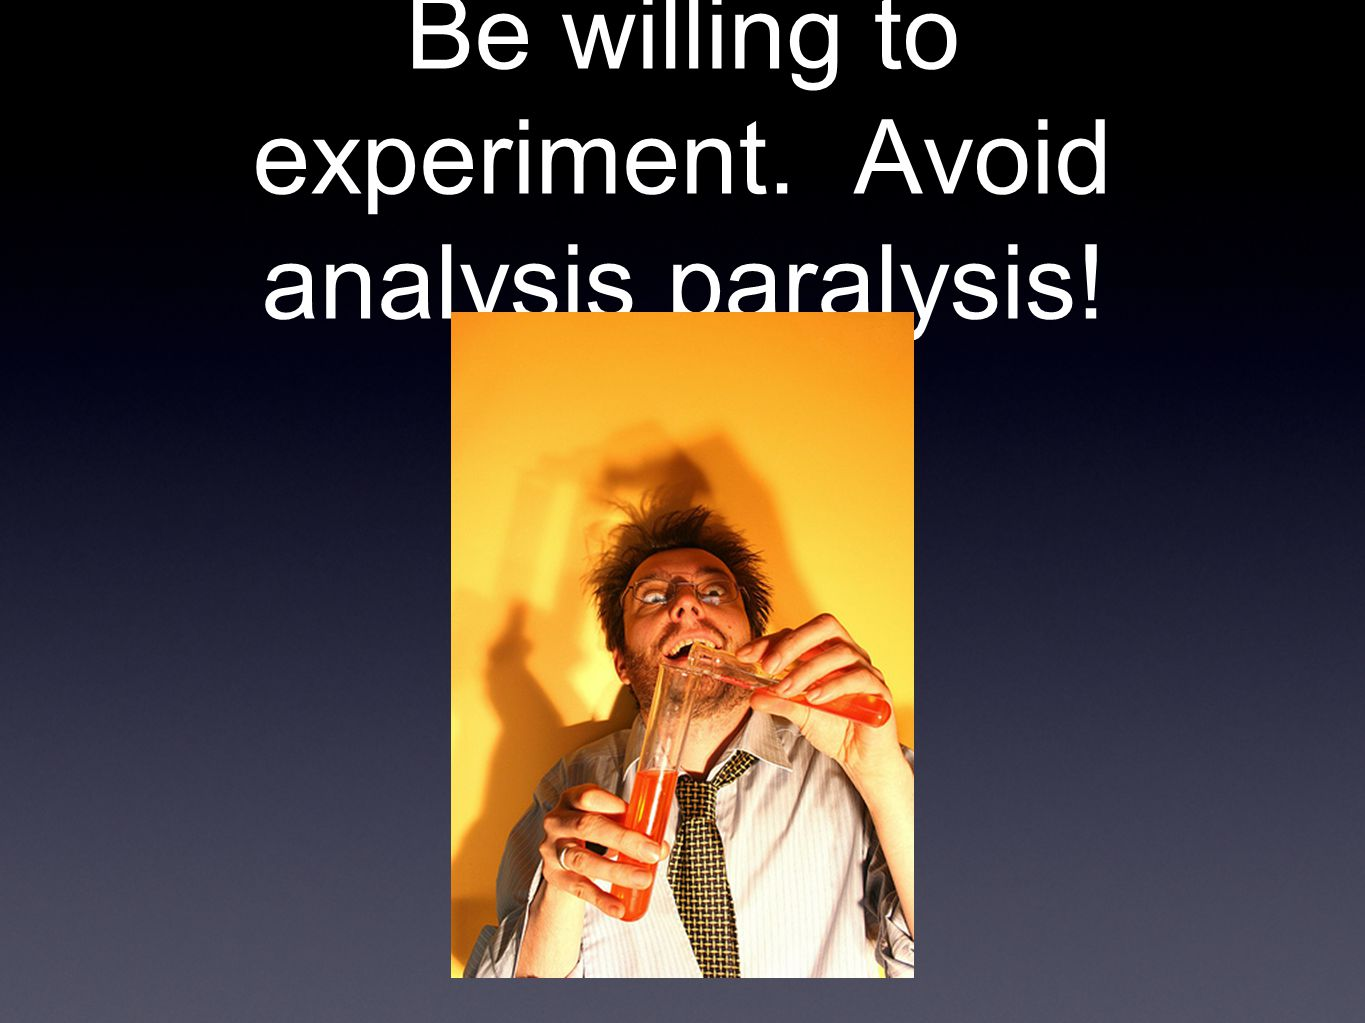 Be willing to experiment. Avoid analysis paralysis!